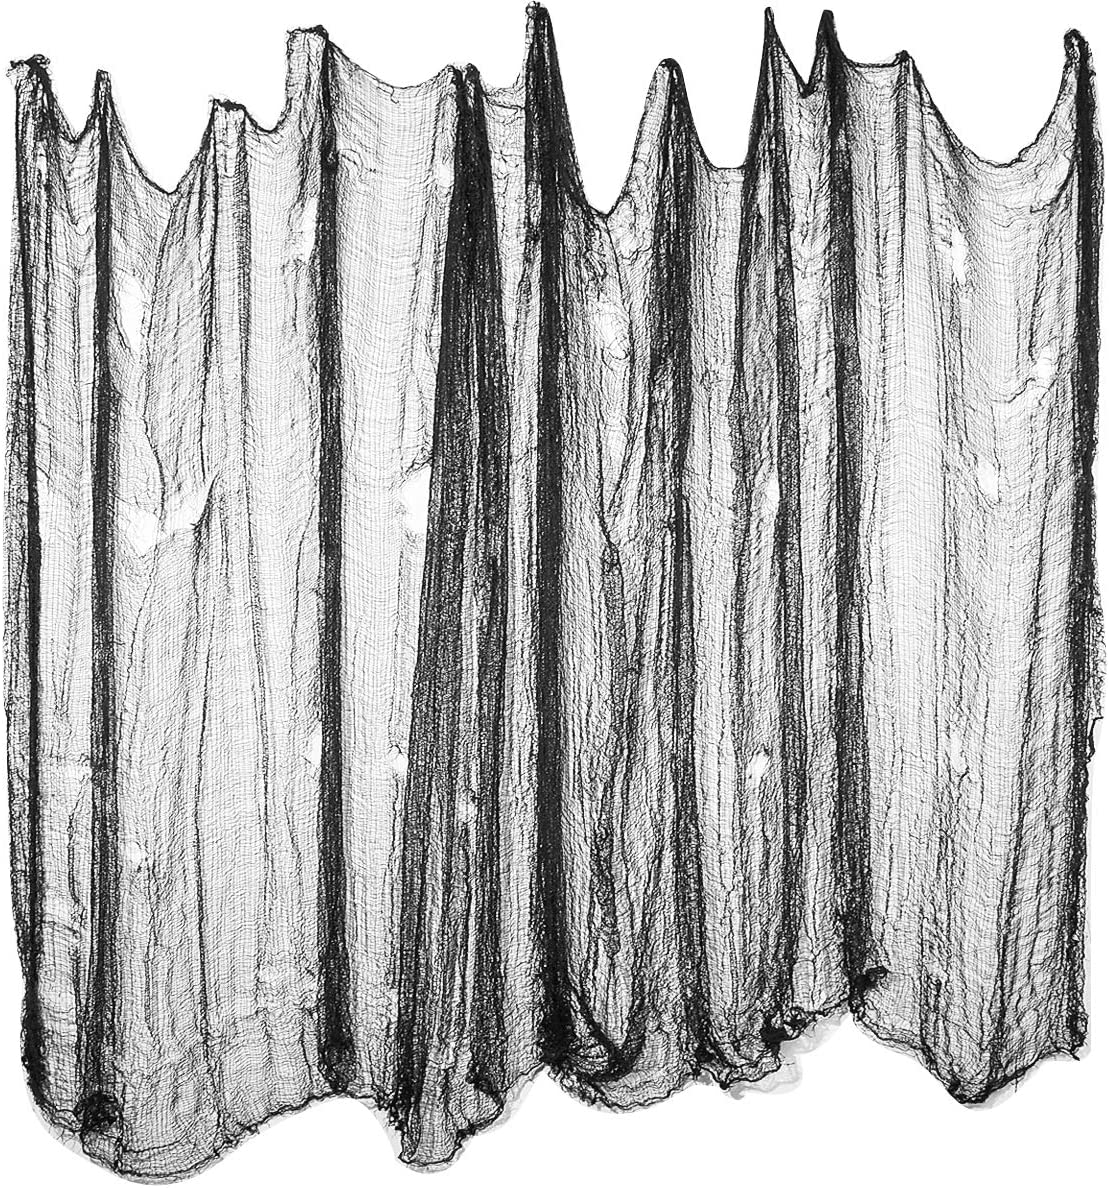 Halloween Creepy Cloth, 236 x 78.7 inch Black Spooky Gauze Cloth Halloween Decor, and Spider Web 2.4 Ounce with 4 Pcs Plastics Spiders for Halloween Haunted Houses Party Decorations Yard Wall Decor